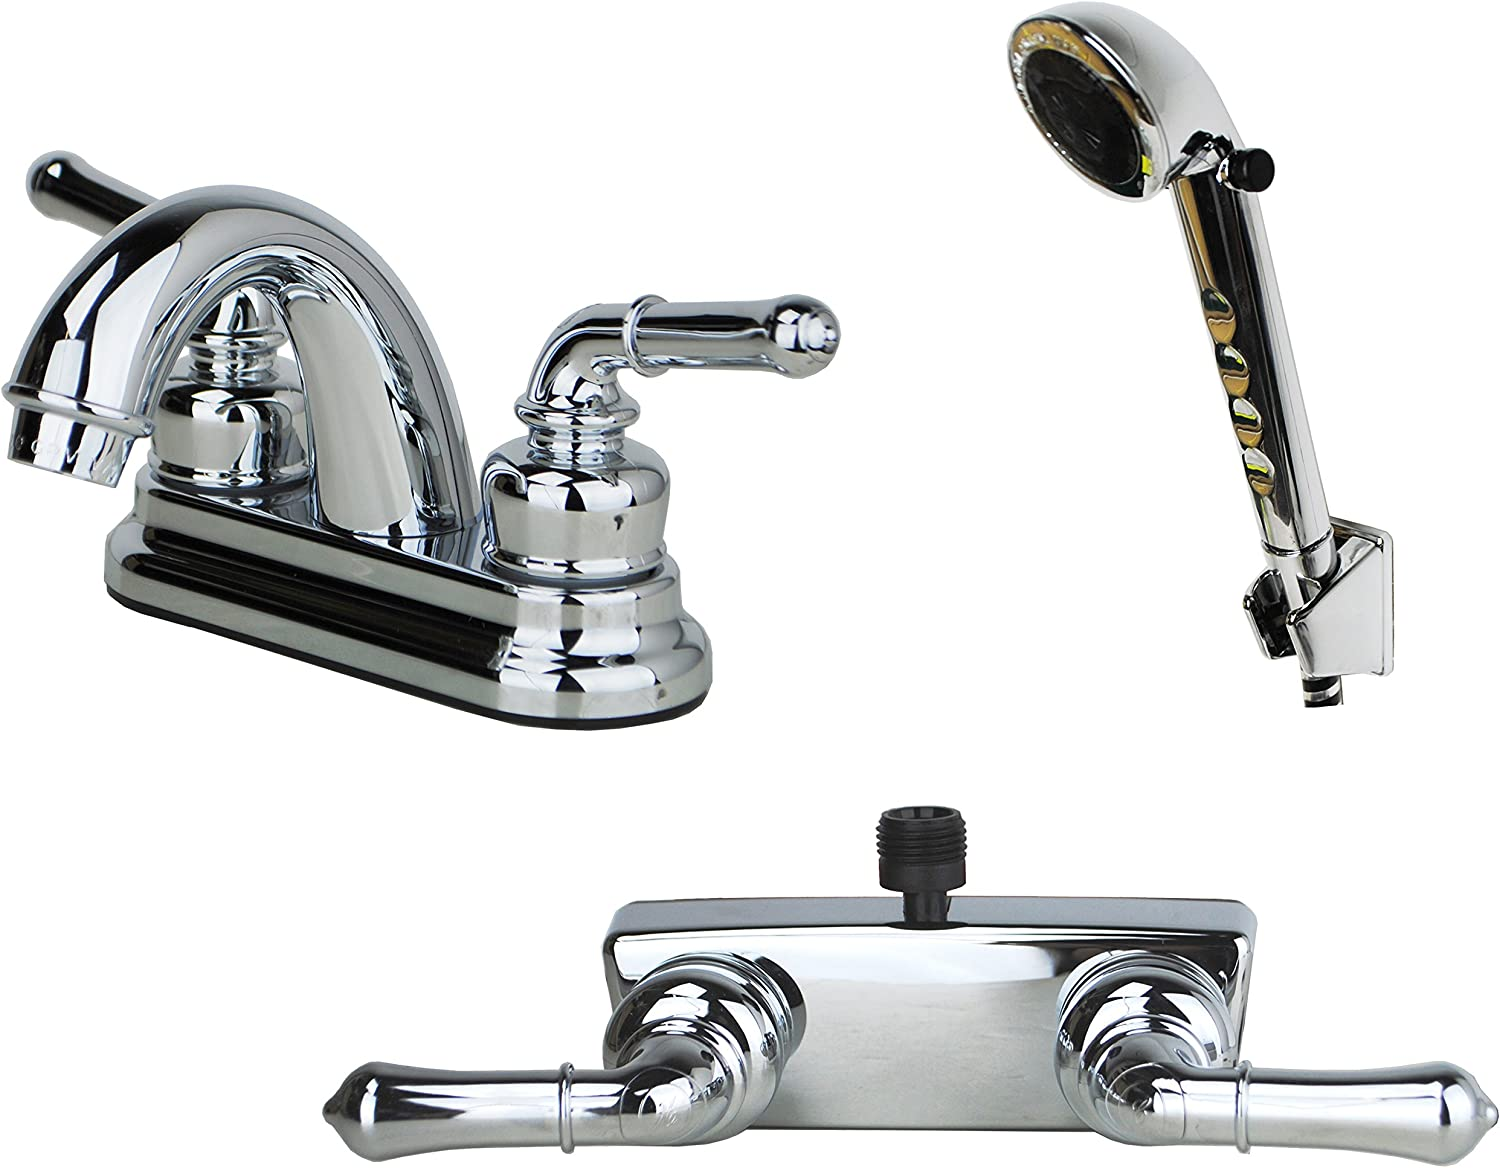 Builders Shoppe 2001CP/3220CP/4120CP RV Bathroom Faucet with Matching Hand Shower Combo Chrome Finish